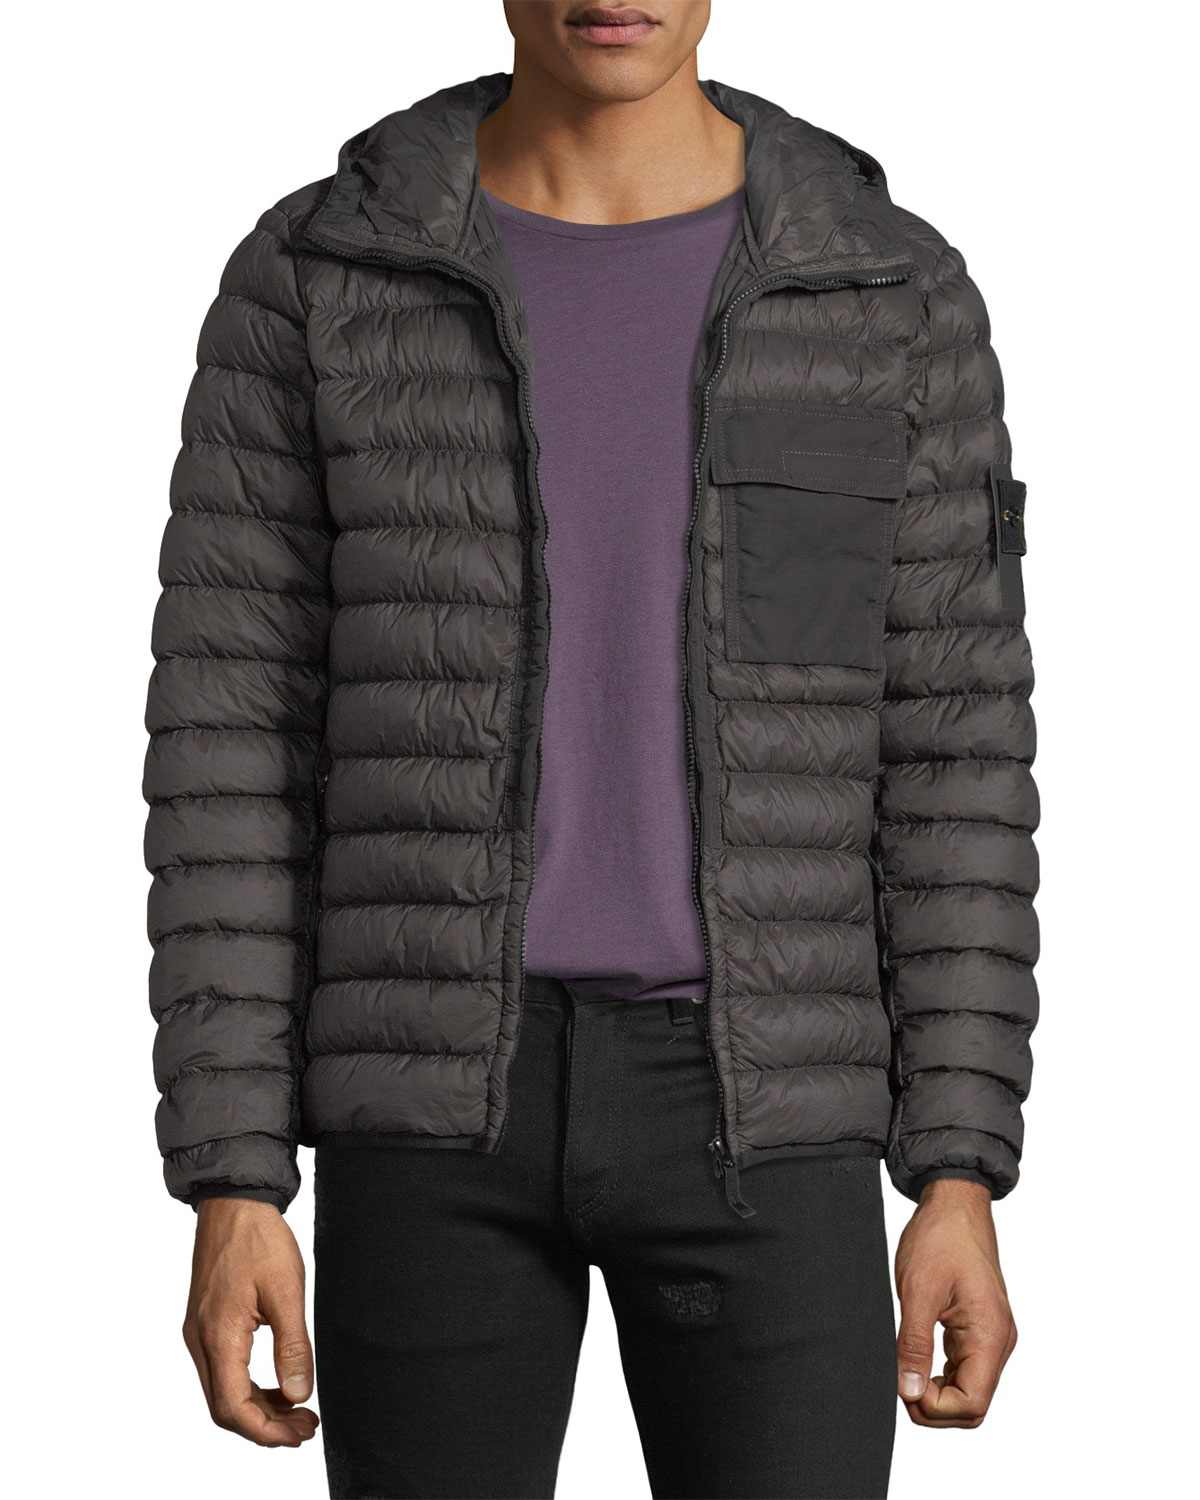 1cc01f8611d06 Stone Island Men'S Quilted Lightweight Down Jacket In Charcoal ...